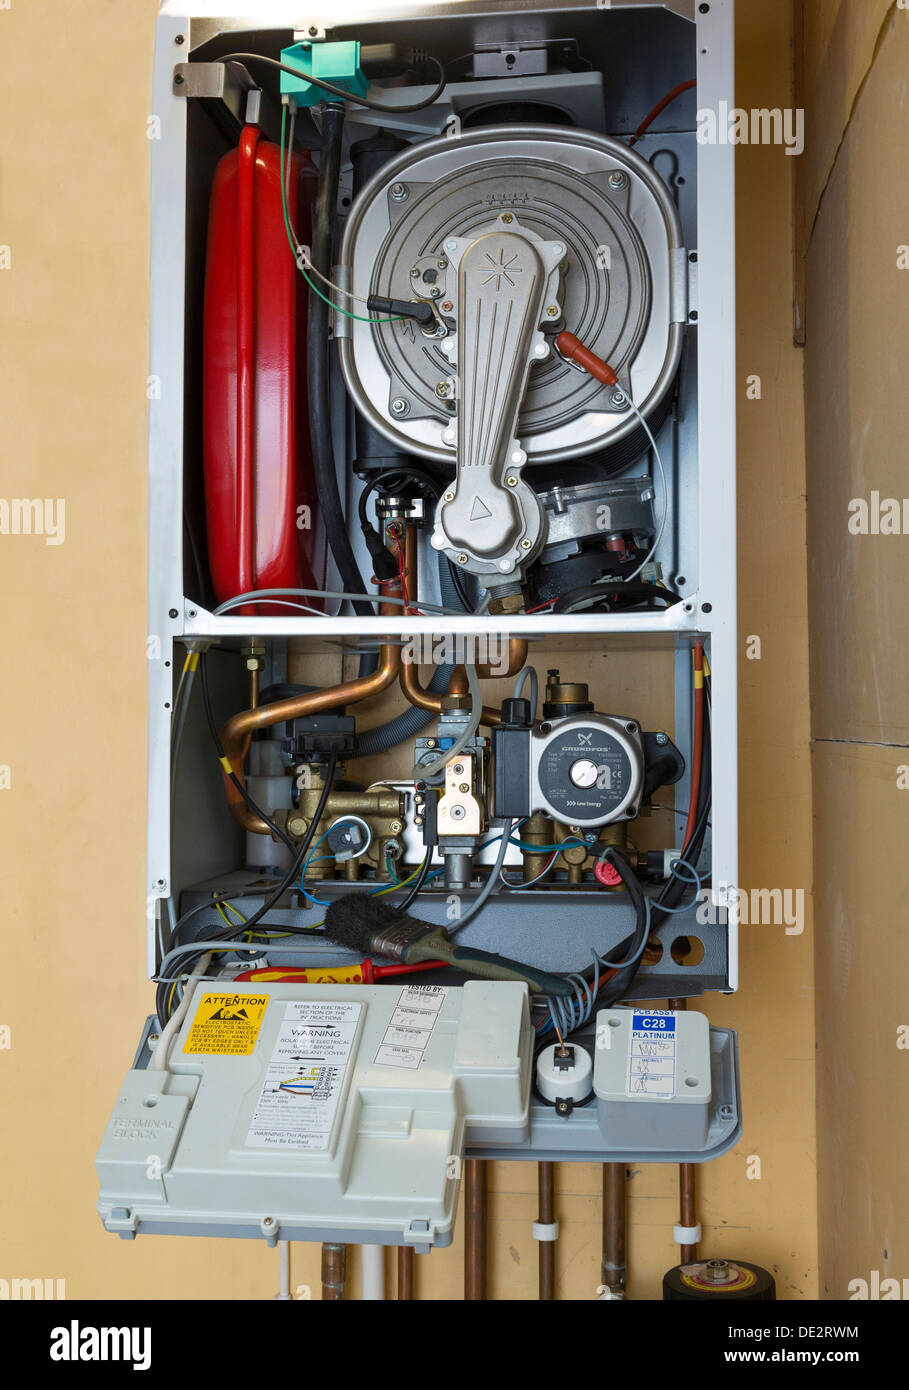 gas boiler with cover removed - Stock Image